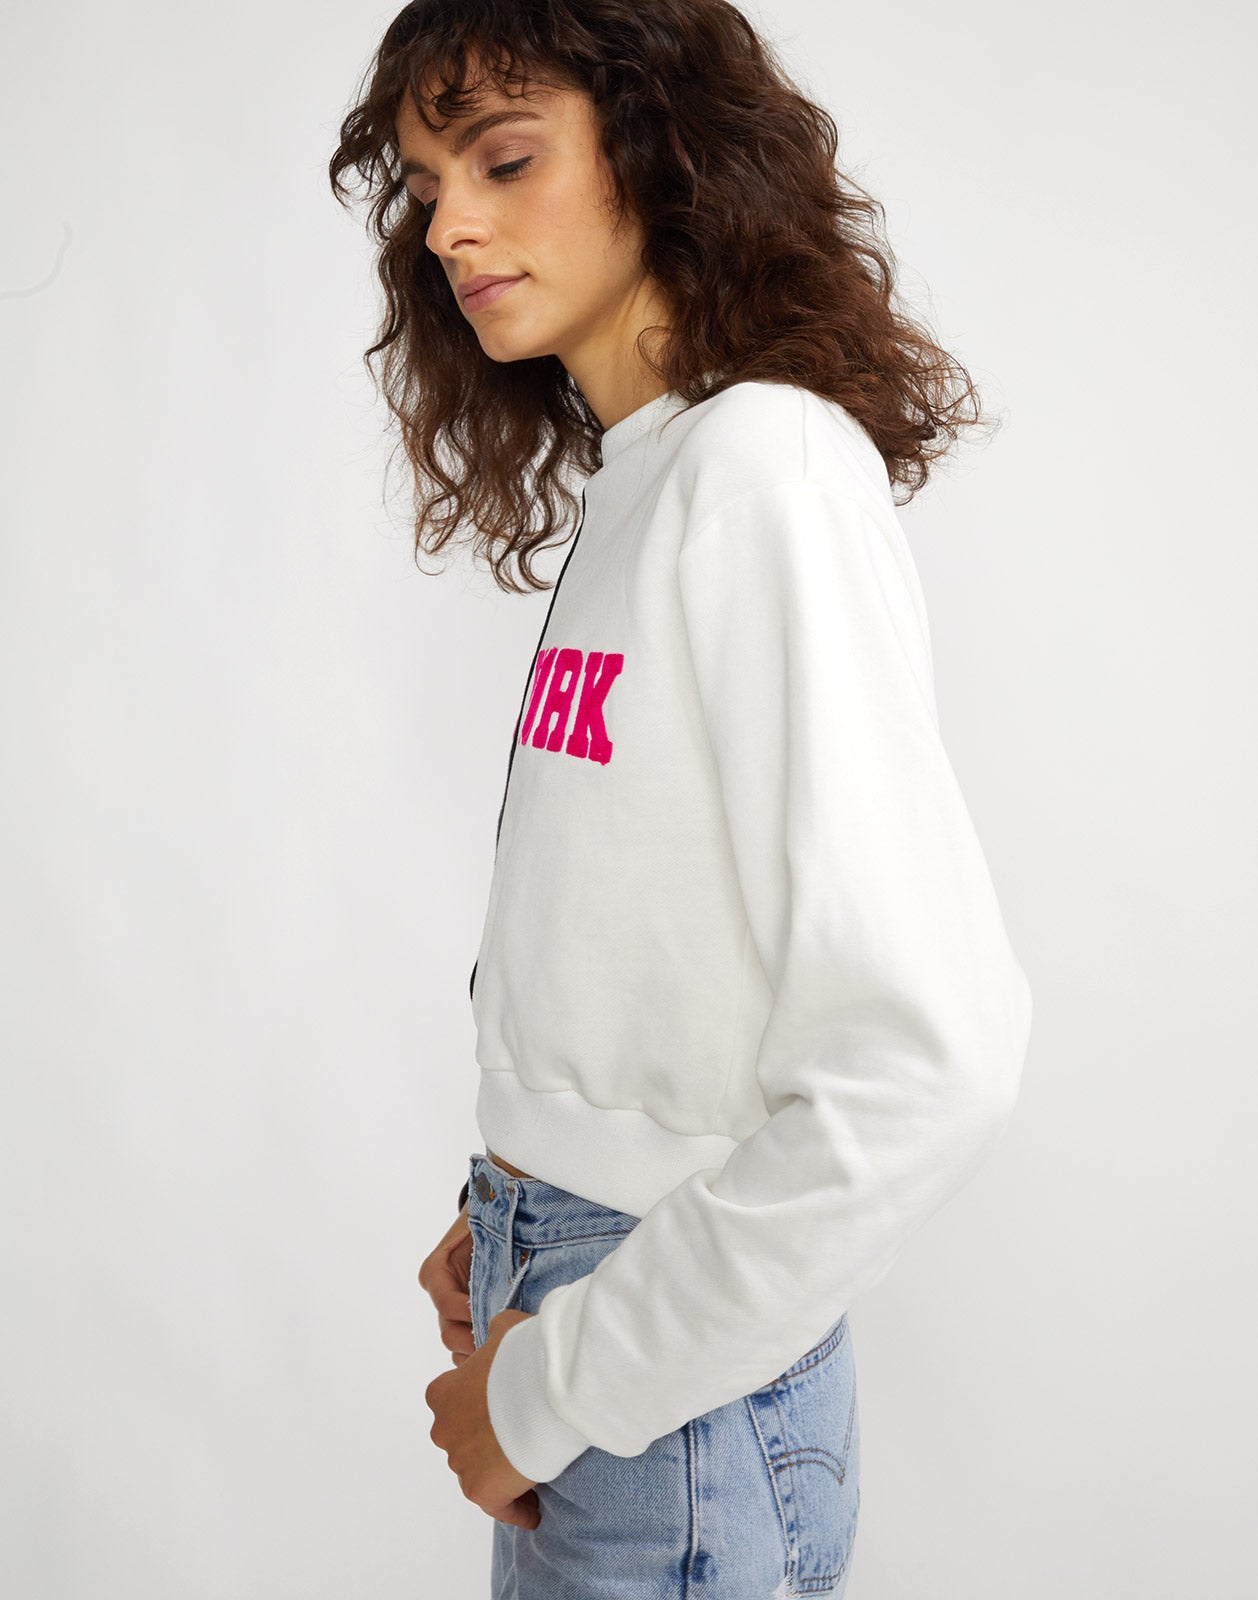 Side view of the black and white CaliYork sweatshirt with hot pink lettering.